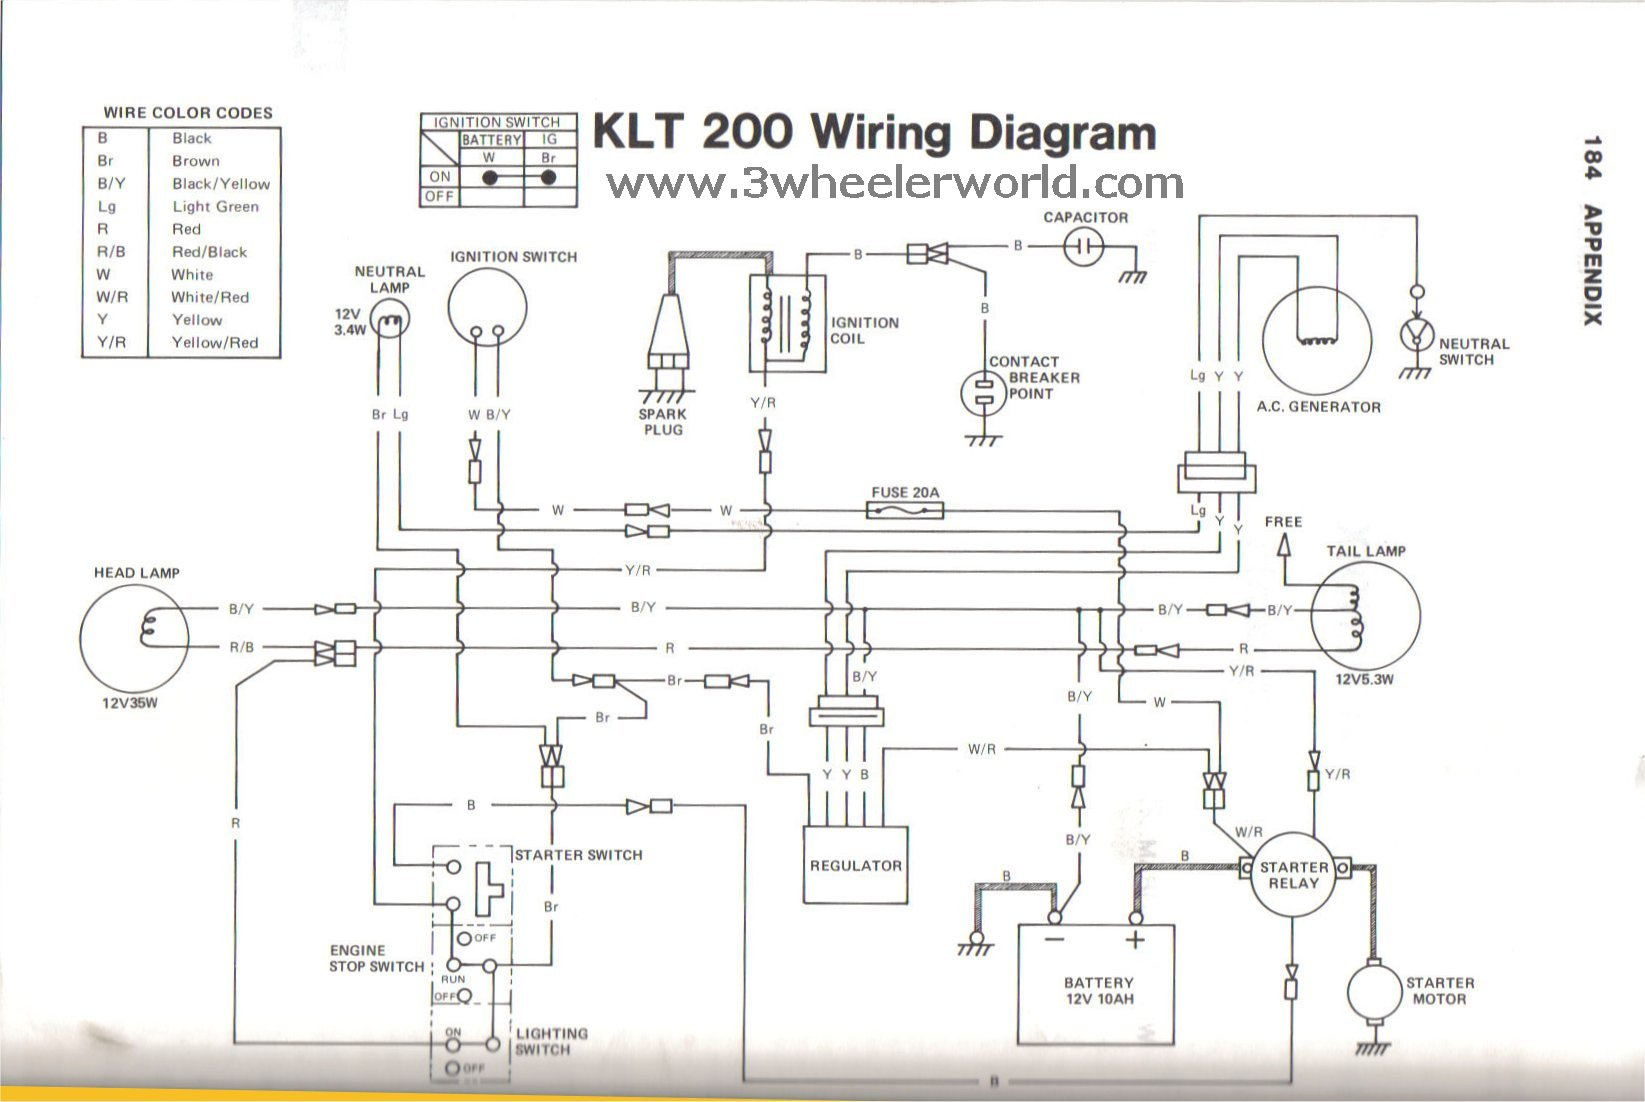 WRG-1907] Kawasaki Lakota Wiring Diagram on honda xr200 wiring diagram, harley davidson wiring diagram, kawasaki lakota motor, kawasaki lakota valves, kawasaki lakota wheels, kawasaki lakota clutch, kawasaki lakota exhaust, kawasaki lakota headlight,